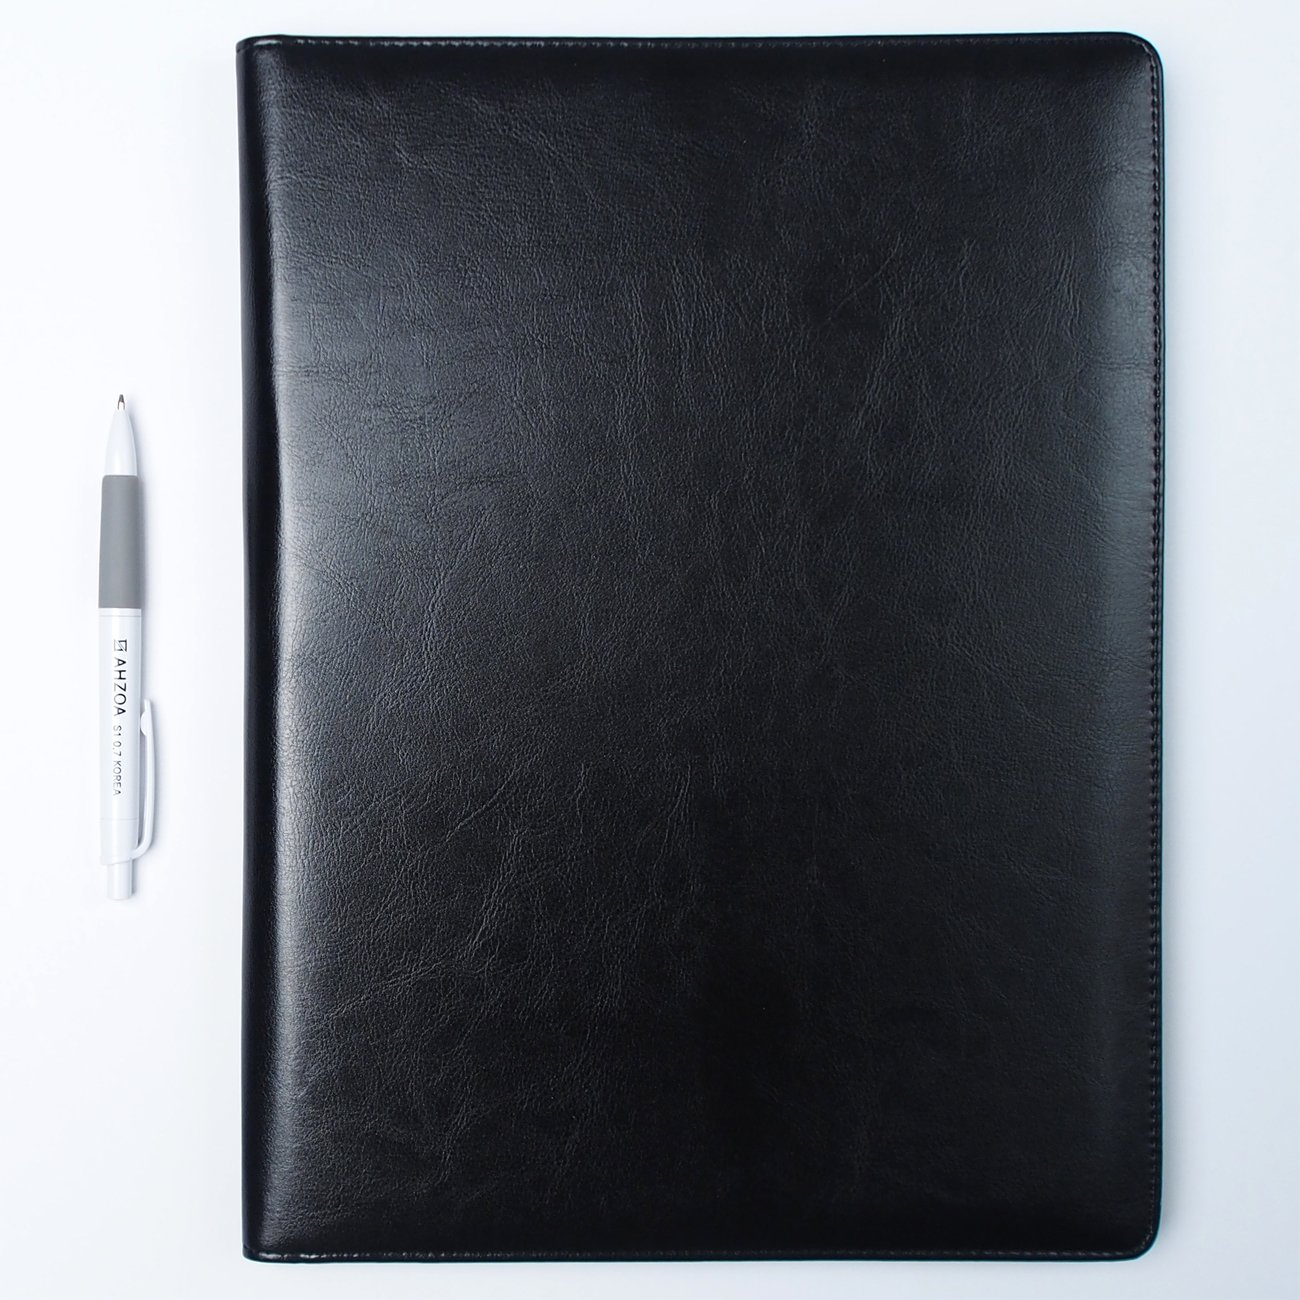 AHZOA 4 Pockets A4 Size Memo Padfolio S3 with Mechanical Pencil, Including 8.27 X 11.7 inch Legal Writing Pad, Synthetic Leather Handmade 9.84 X 12.99 inch Notepad Clipboard (Black) by AHZOA (Image #6)